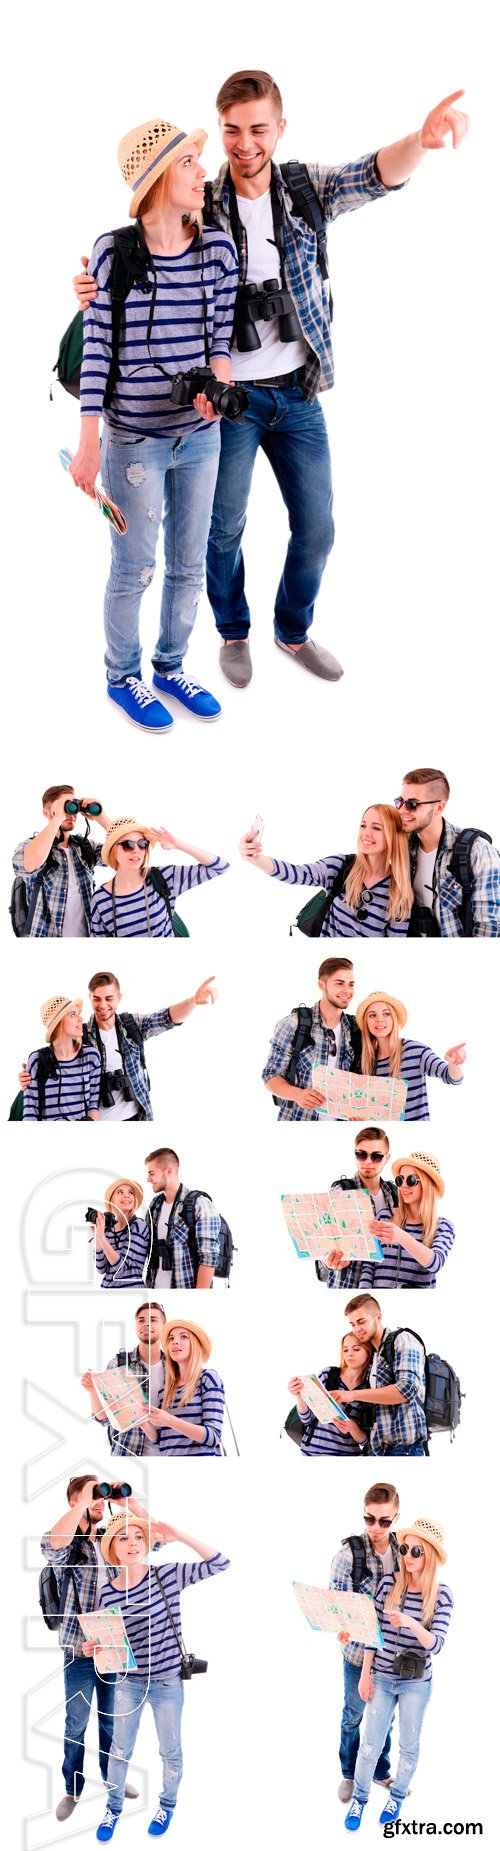 Stock Photos - Pair of travelers with camera isolated on white